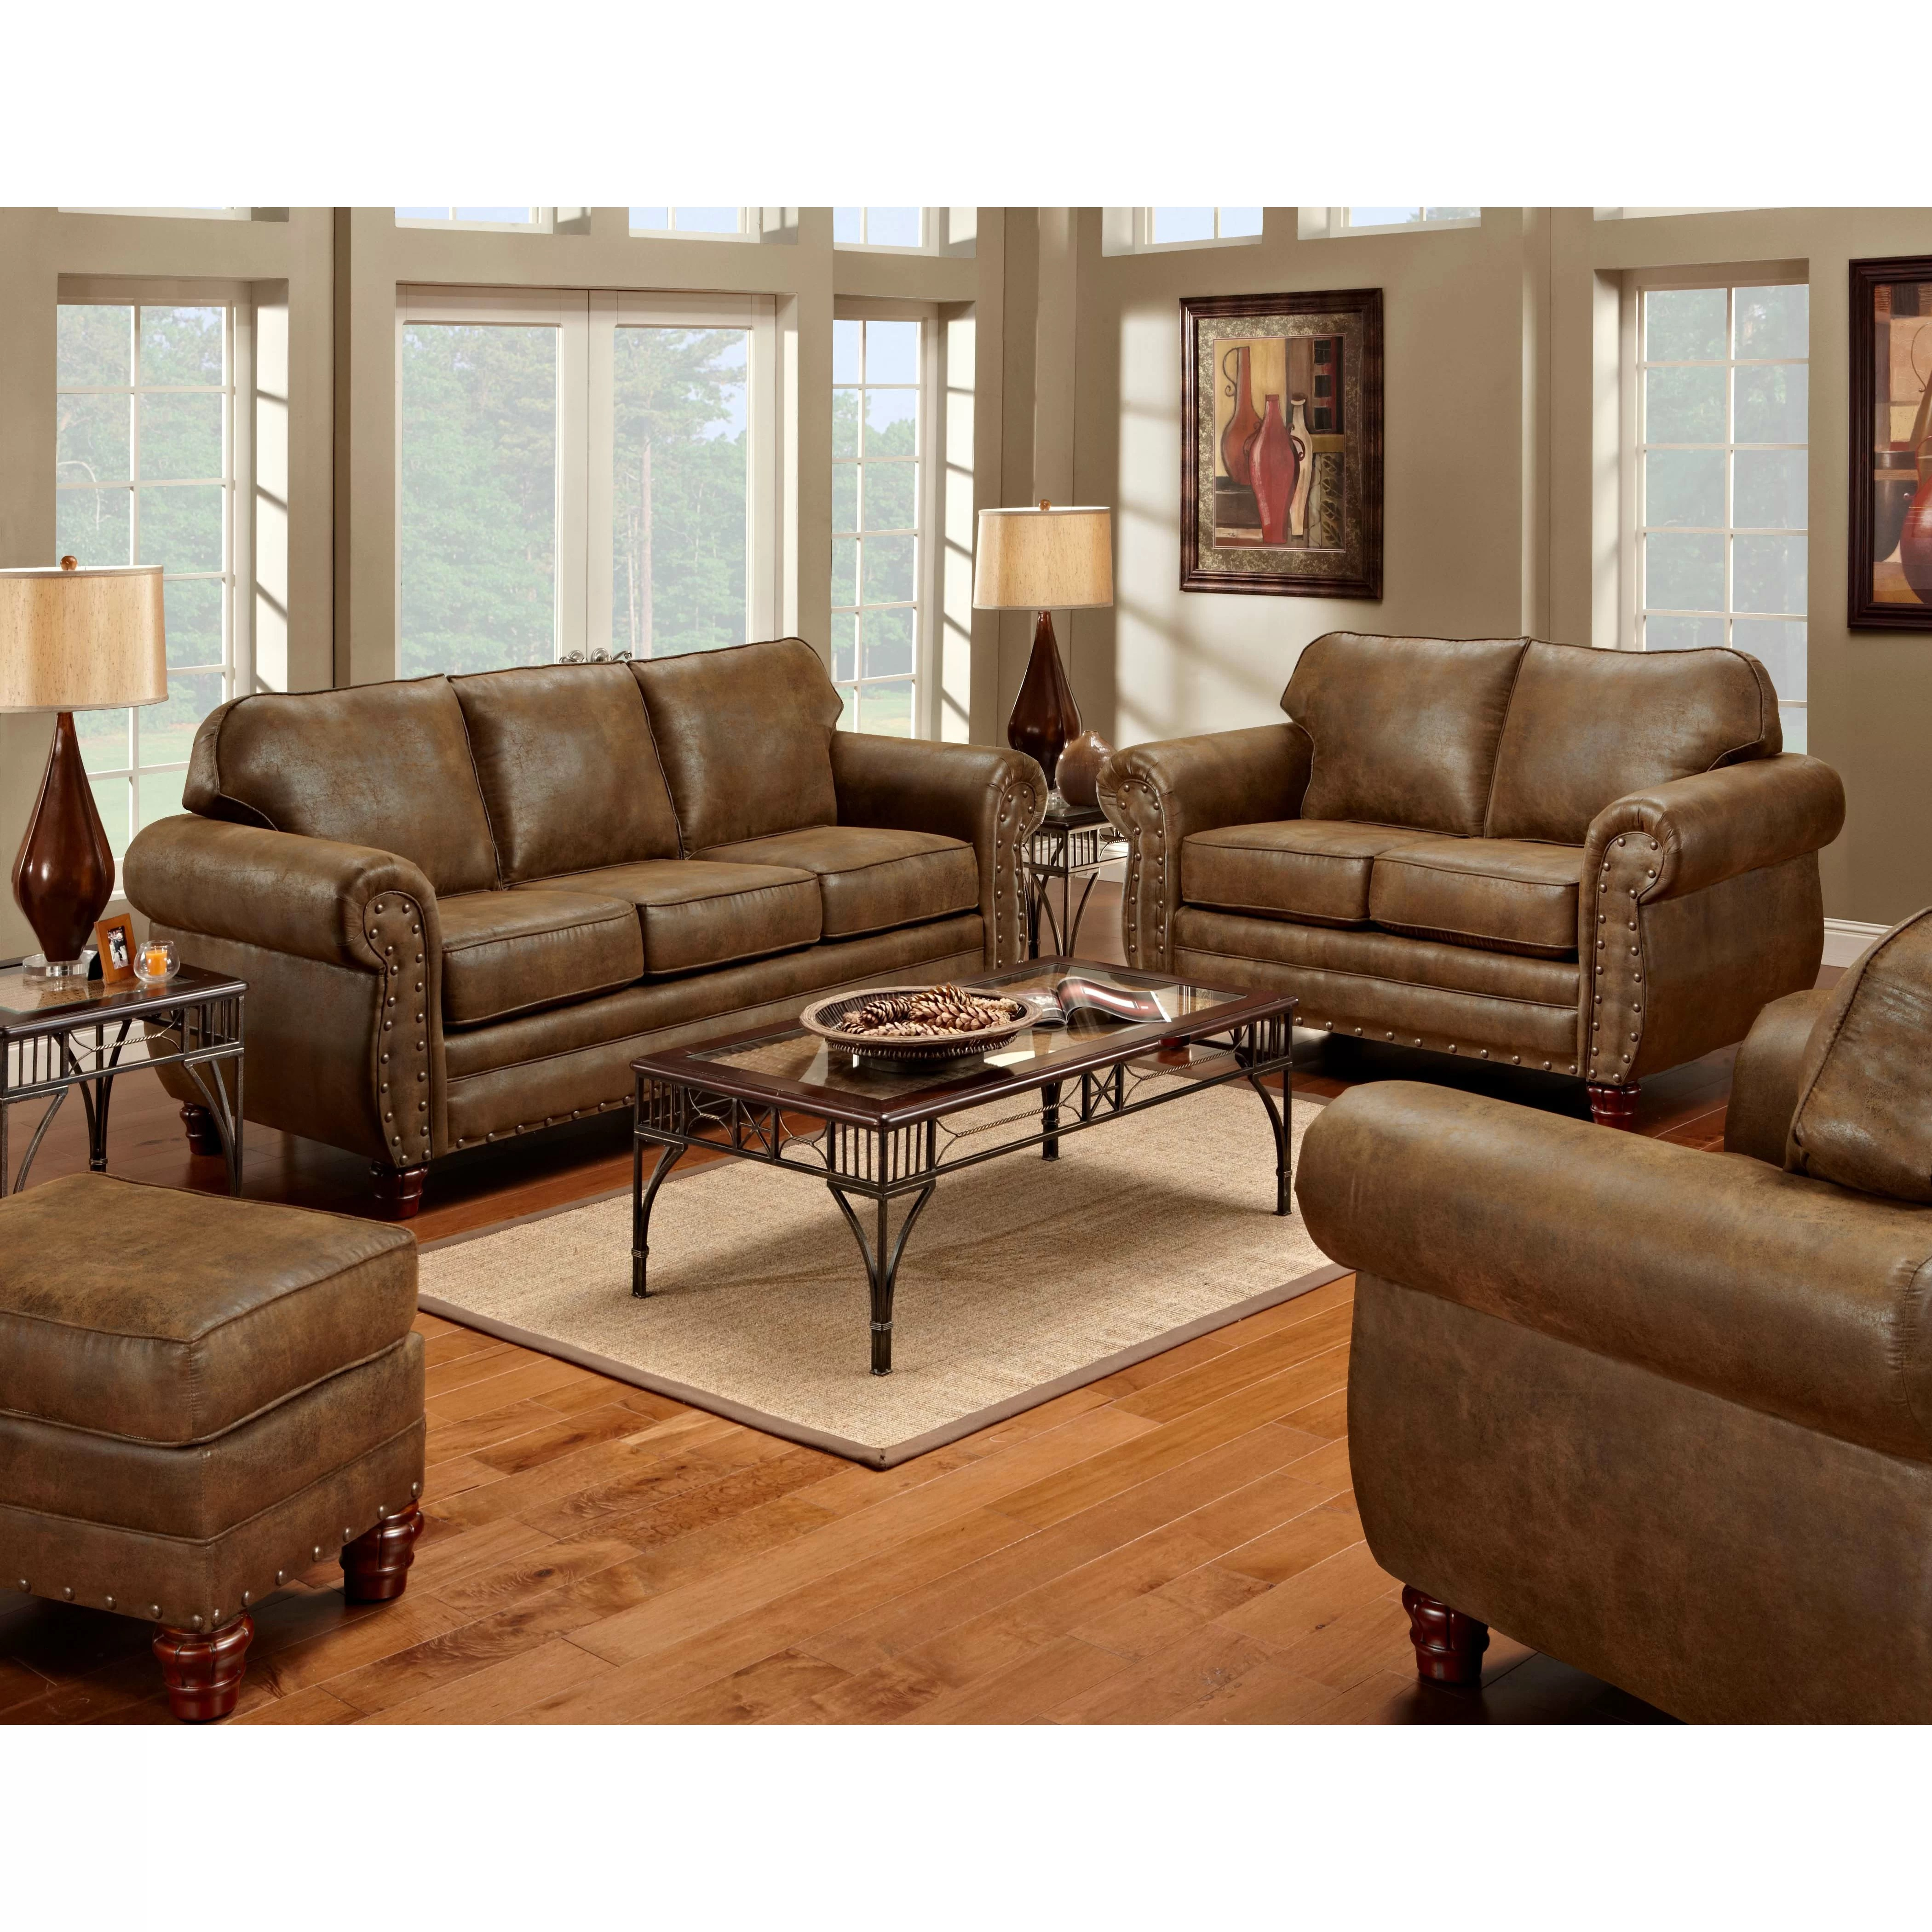 Sleeper Sofa Living Room Sets American Furniture Classics Sedona 4 Piece Living Room Set